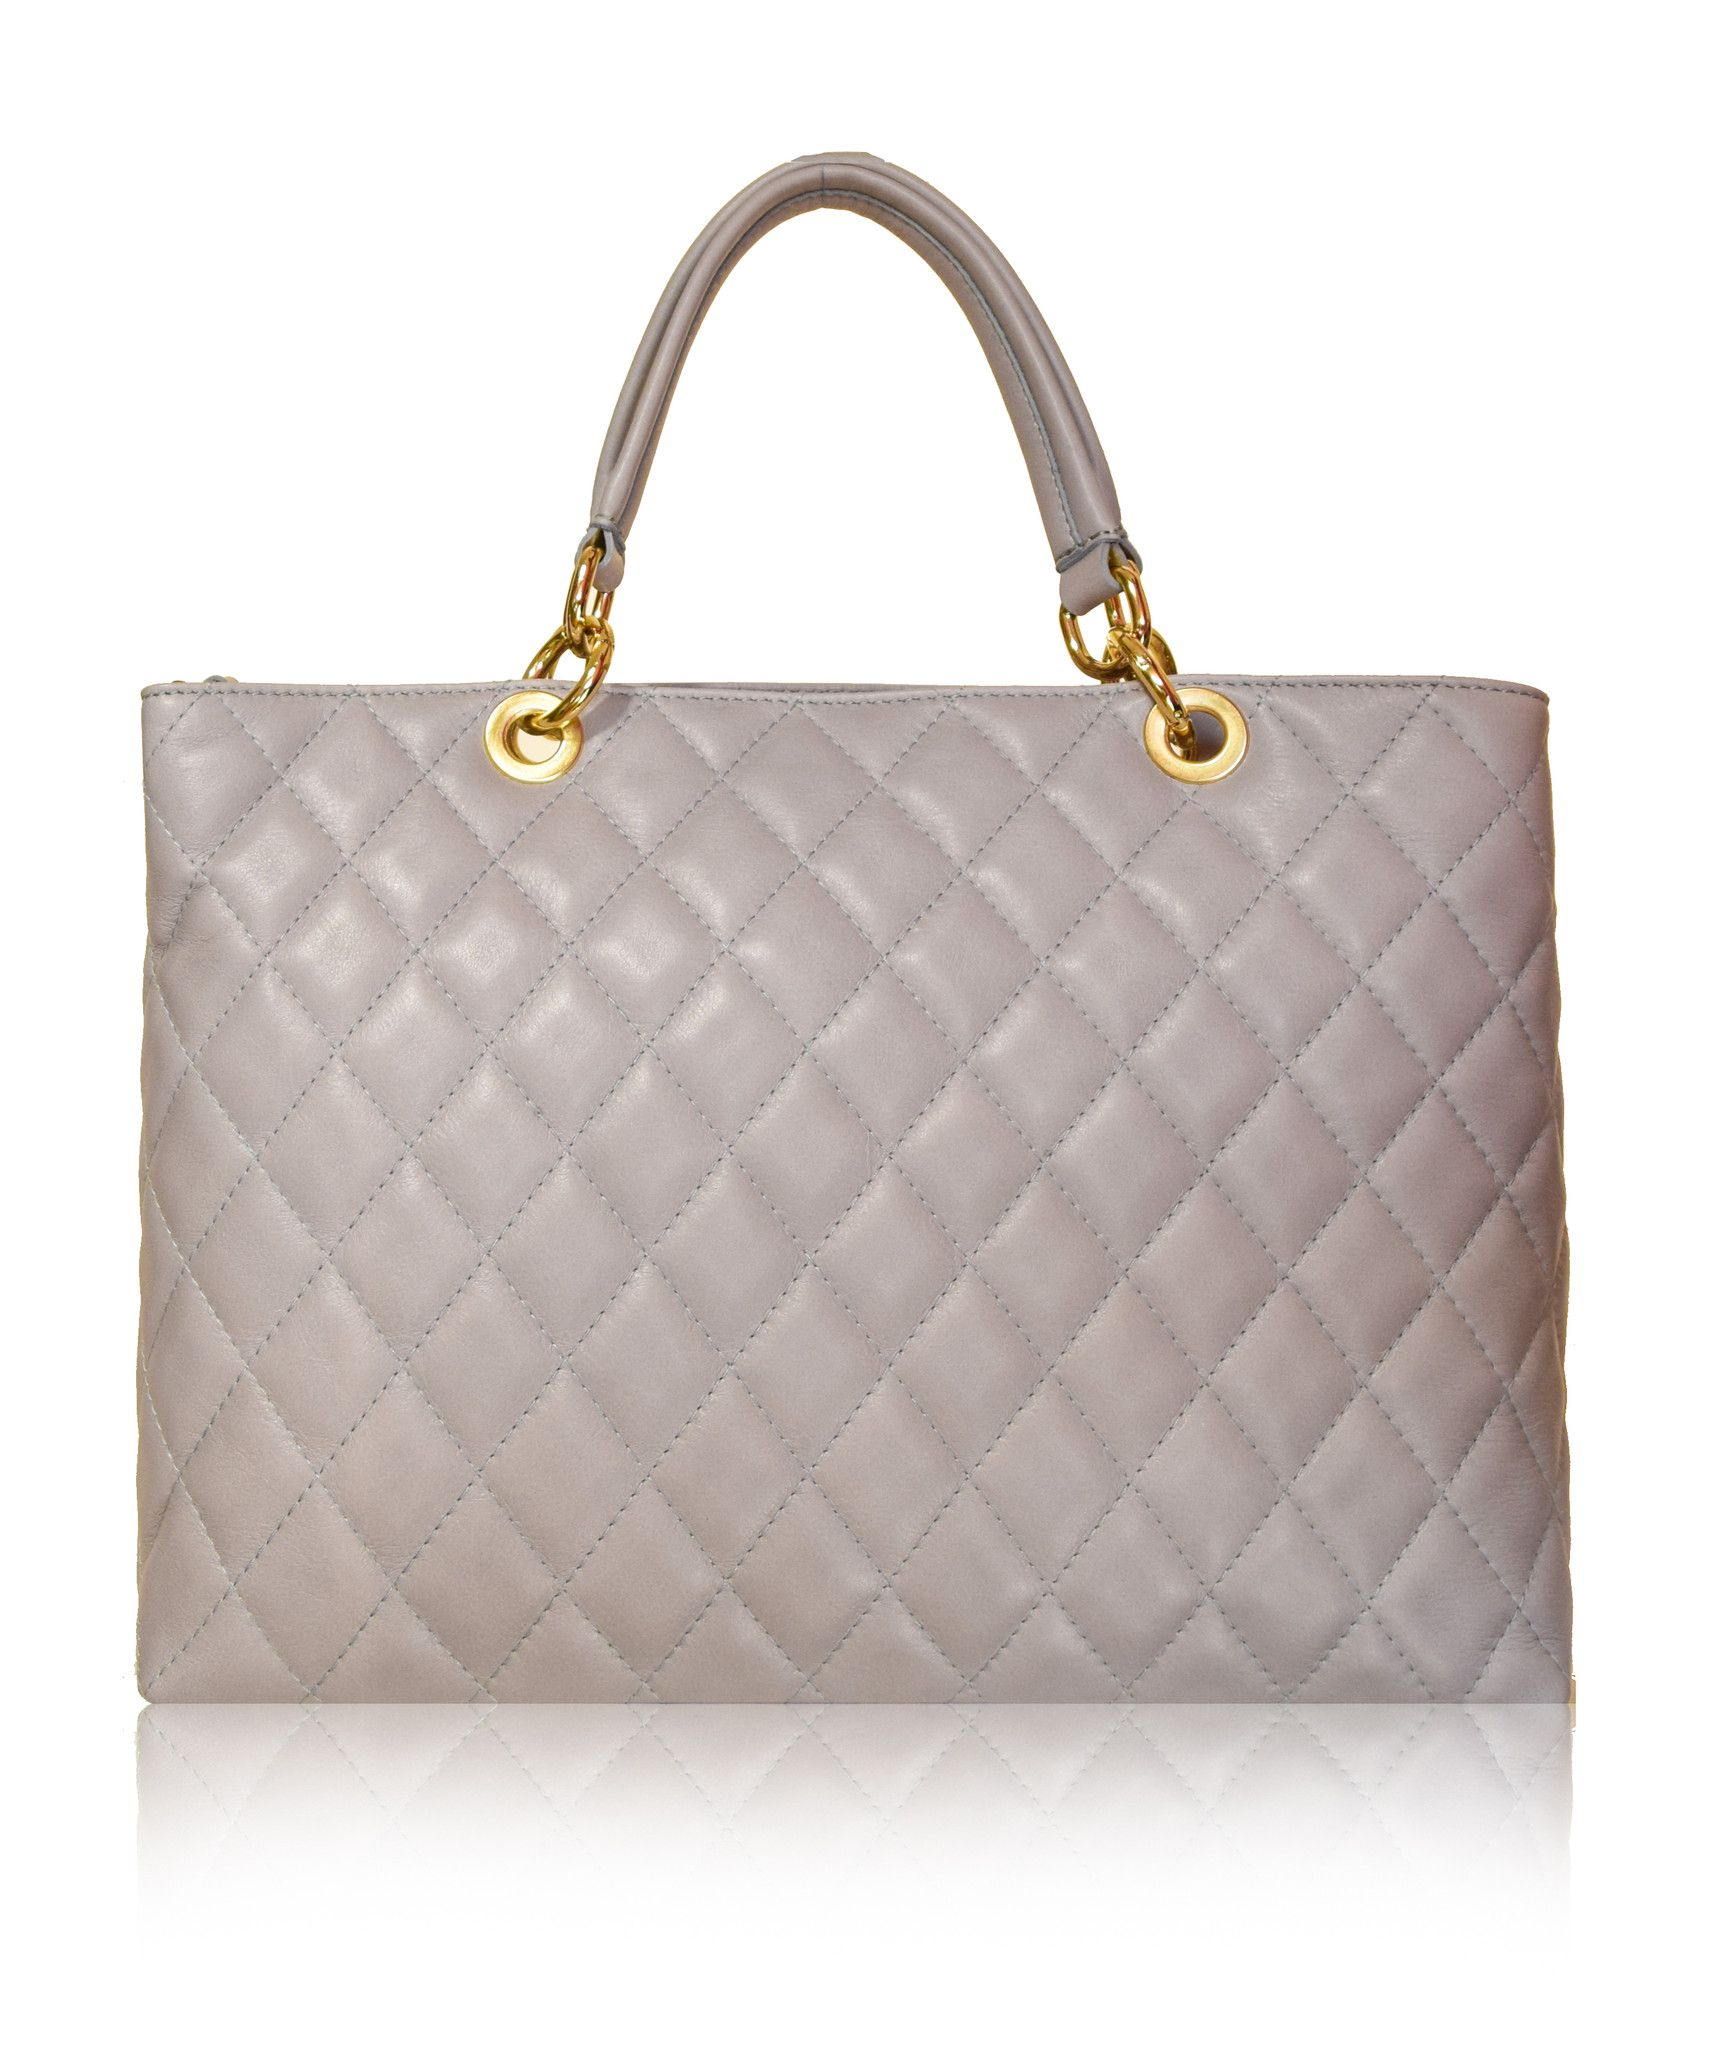 Strozzi Grand Ping Tote Gst Chanel Style Grey Quilted Leather Handbag From Florence Collection